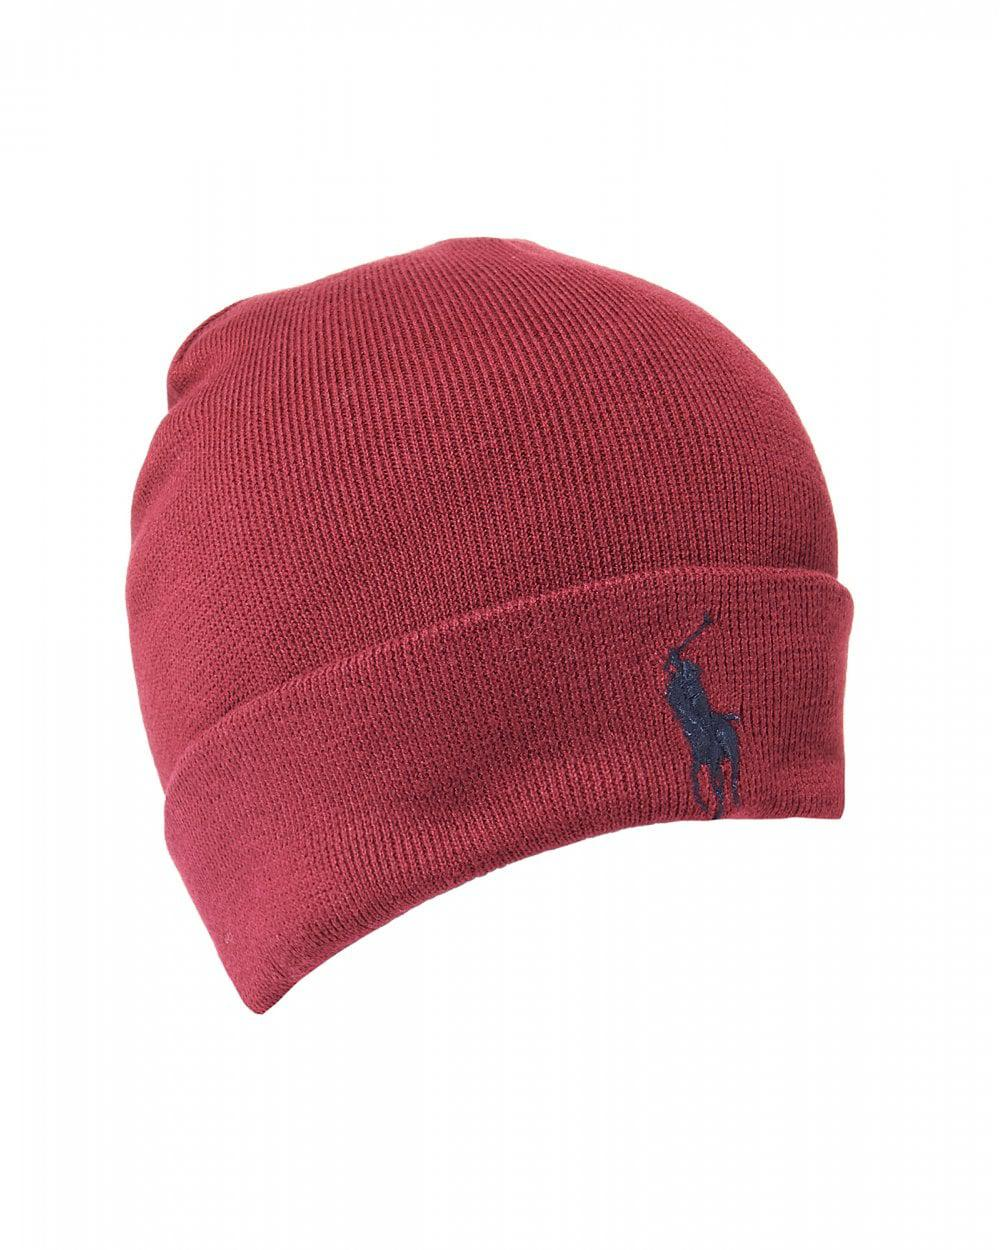 4fa6620a1 Ralph Lauren Large Logo Classic Wine Red Beanie Hat in Red for Men ...